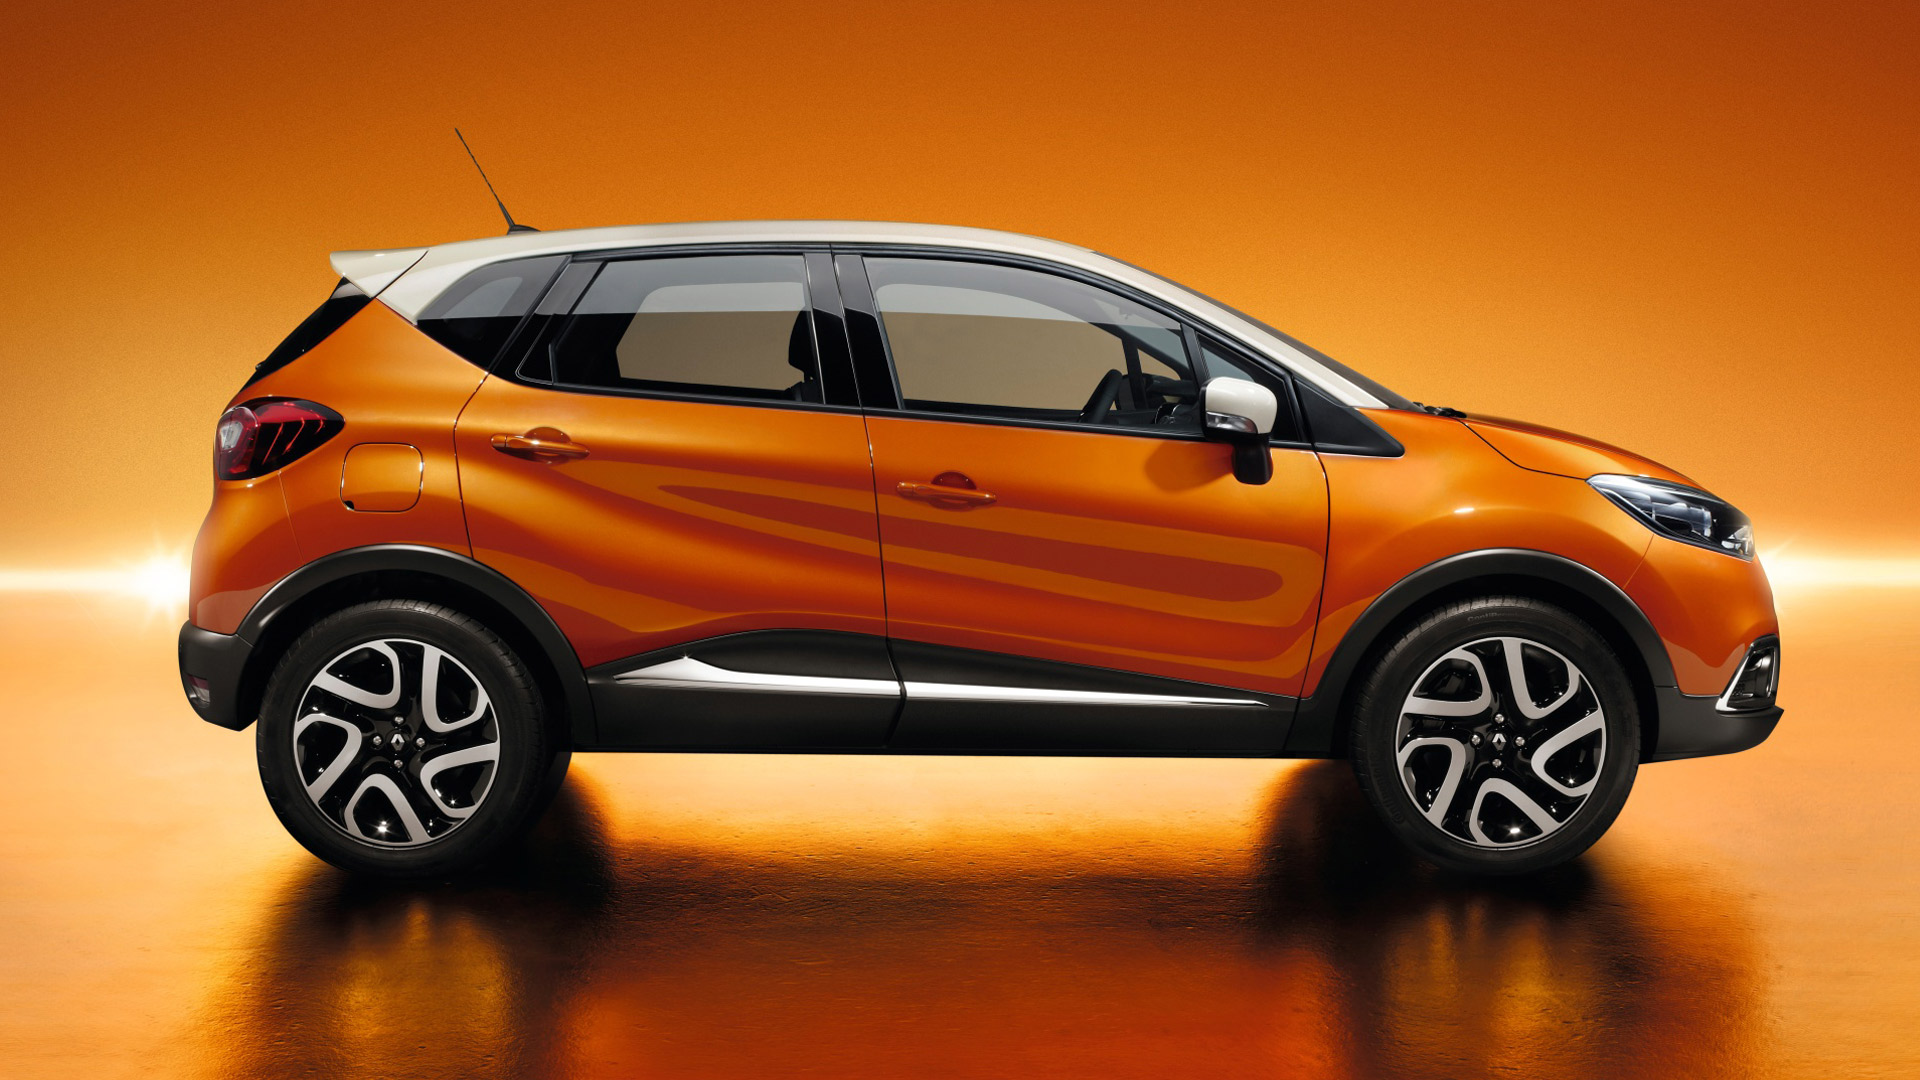 renault captur wallpaper full hd pictures. Black Bedroom Furniture Sets. Home Design Ideas